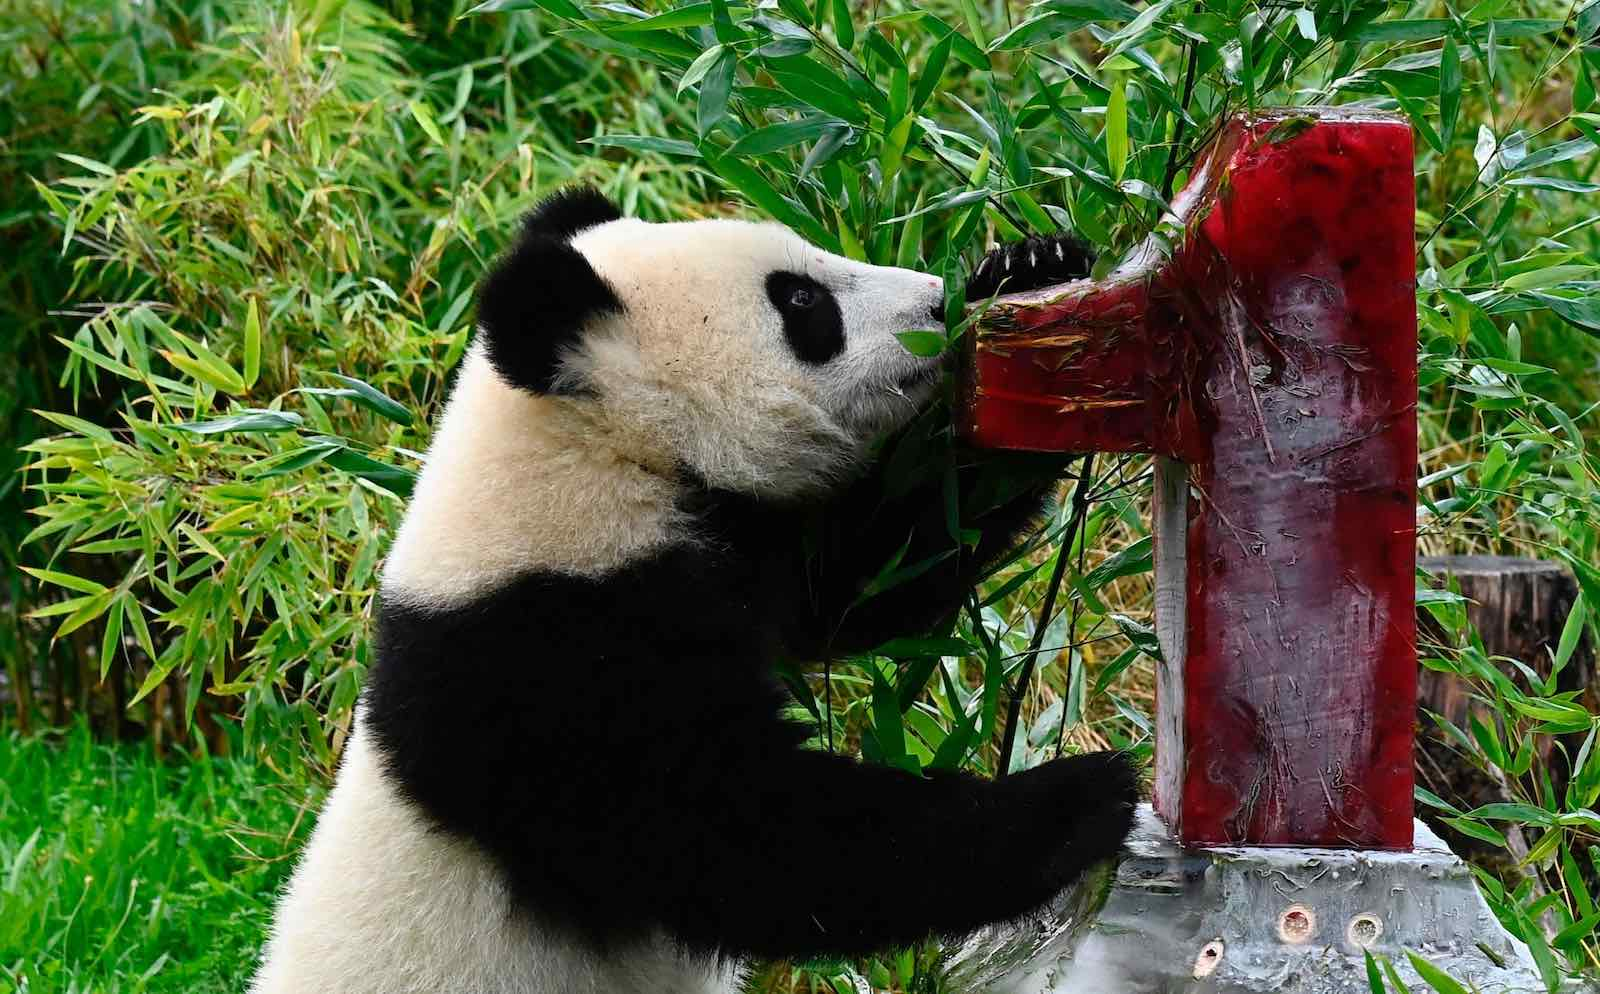 A panda cub at the Zoologischer Garten zoo, Berlin, with an ice cake on his first birthday on 31 August 2020 (Tobias Schwarz/AFP via Getty Images)